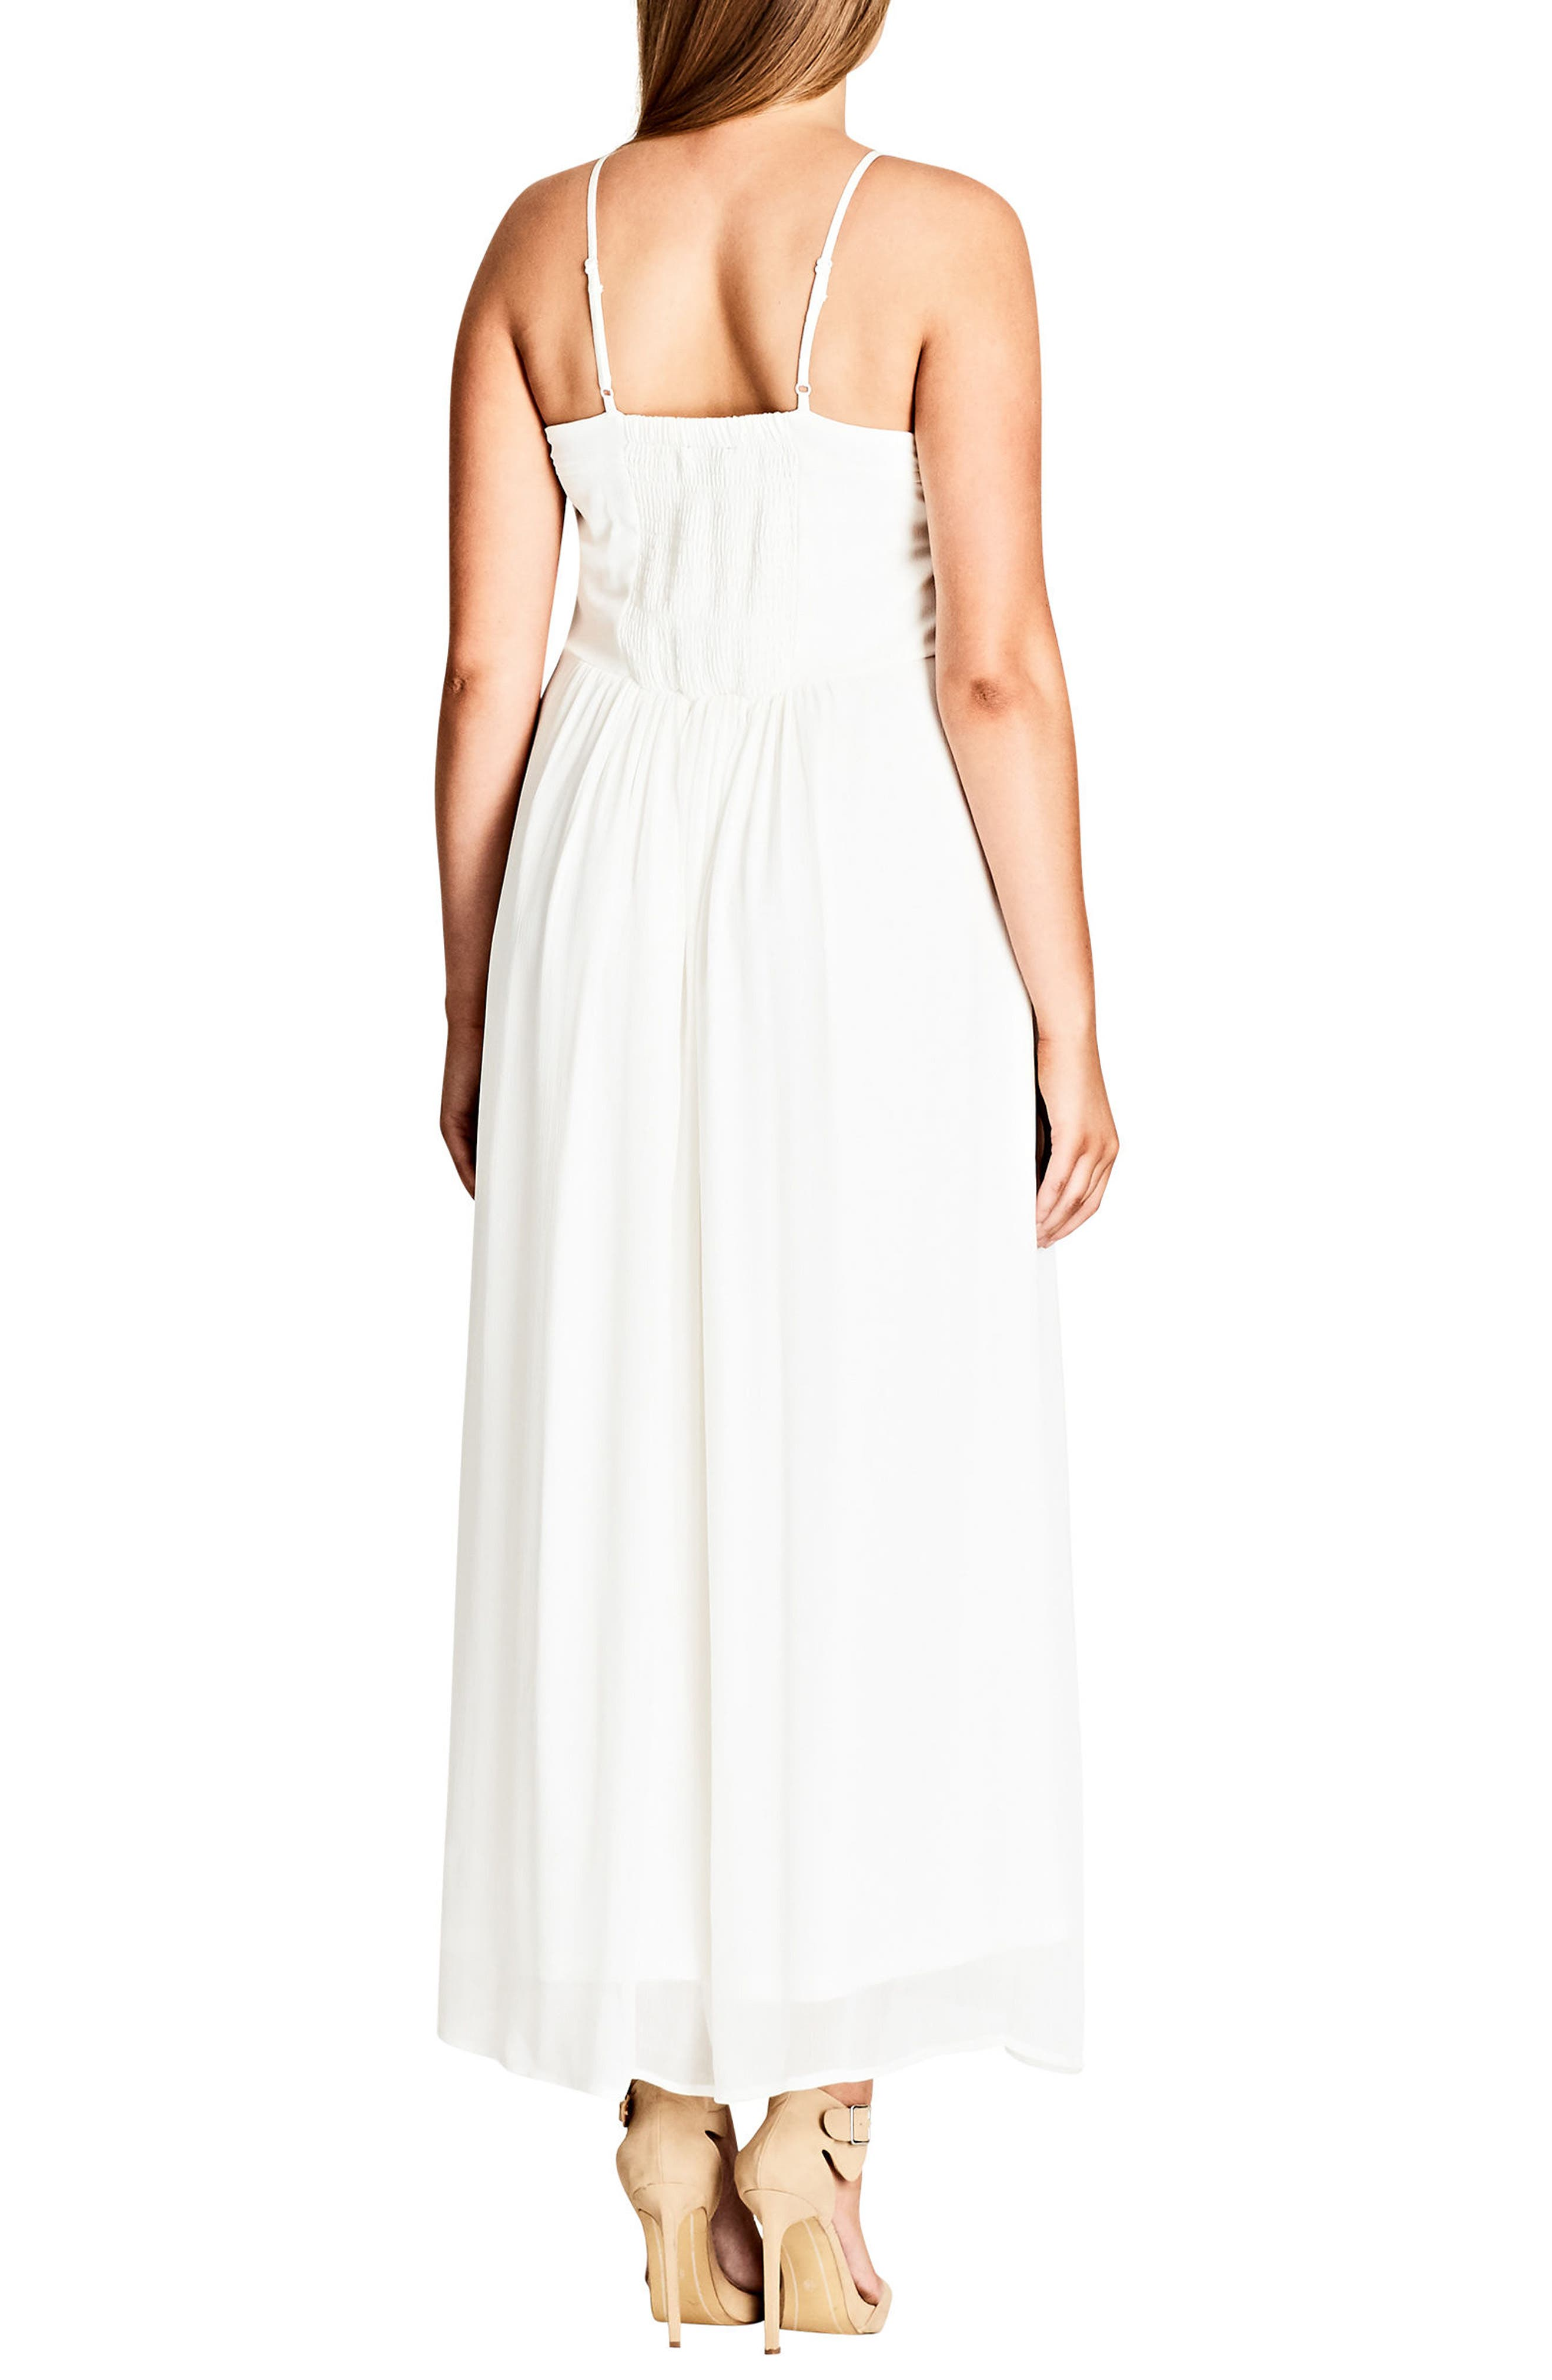 Purity Halter Style Maxi Dress,                             Alternate thumbnail 2, color,                             909